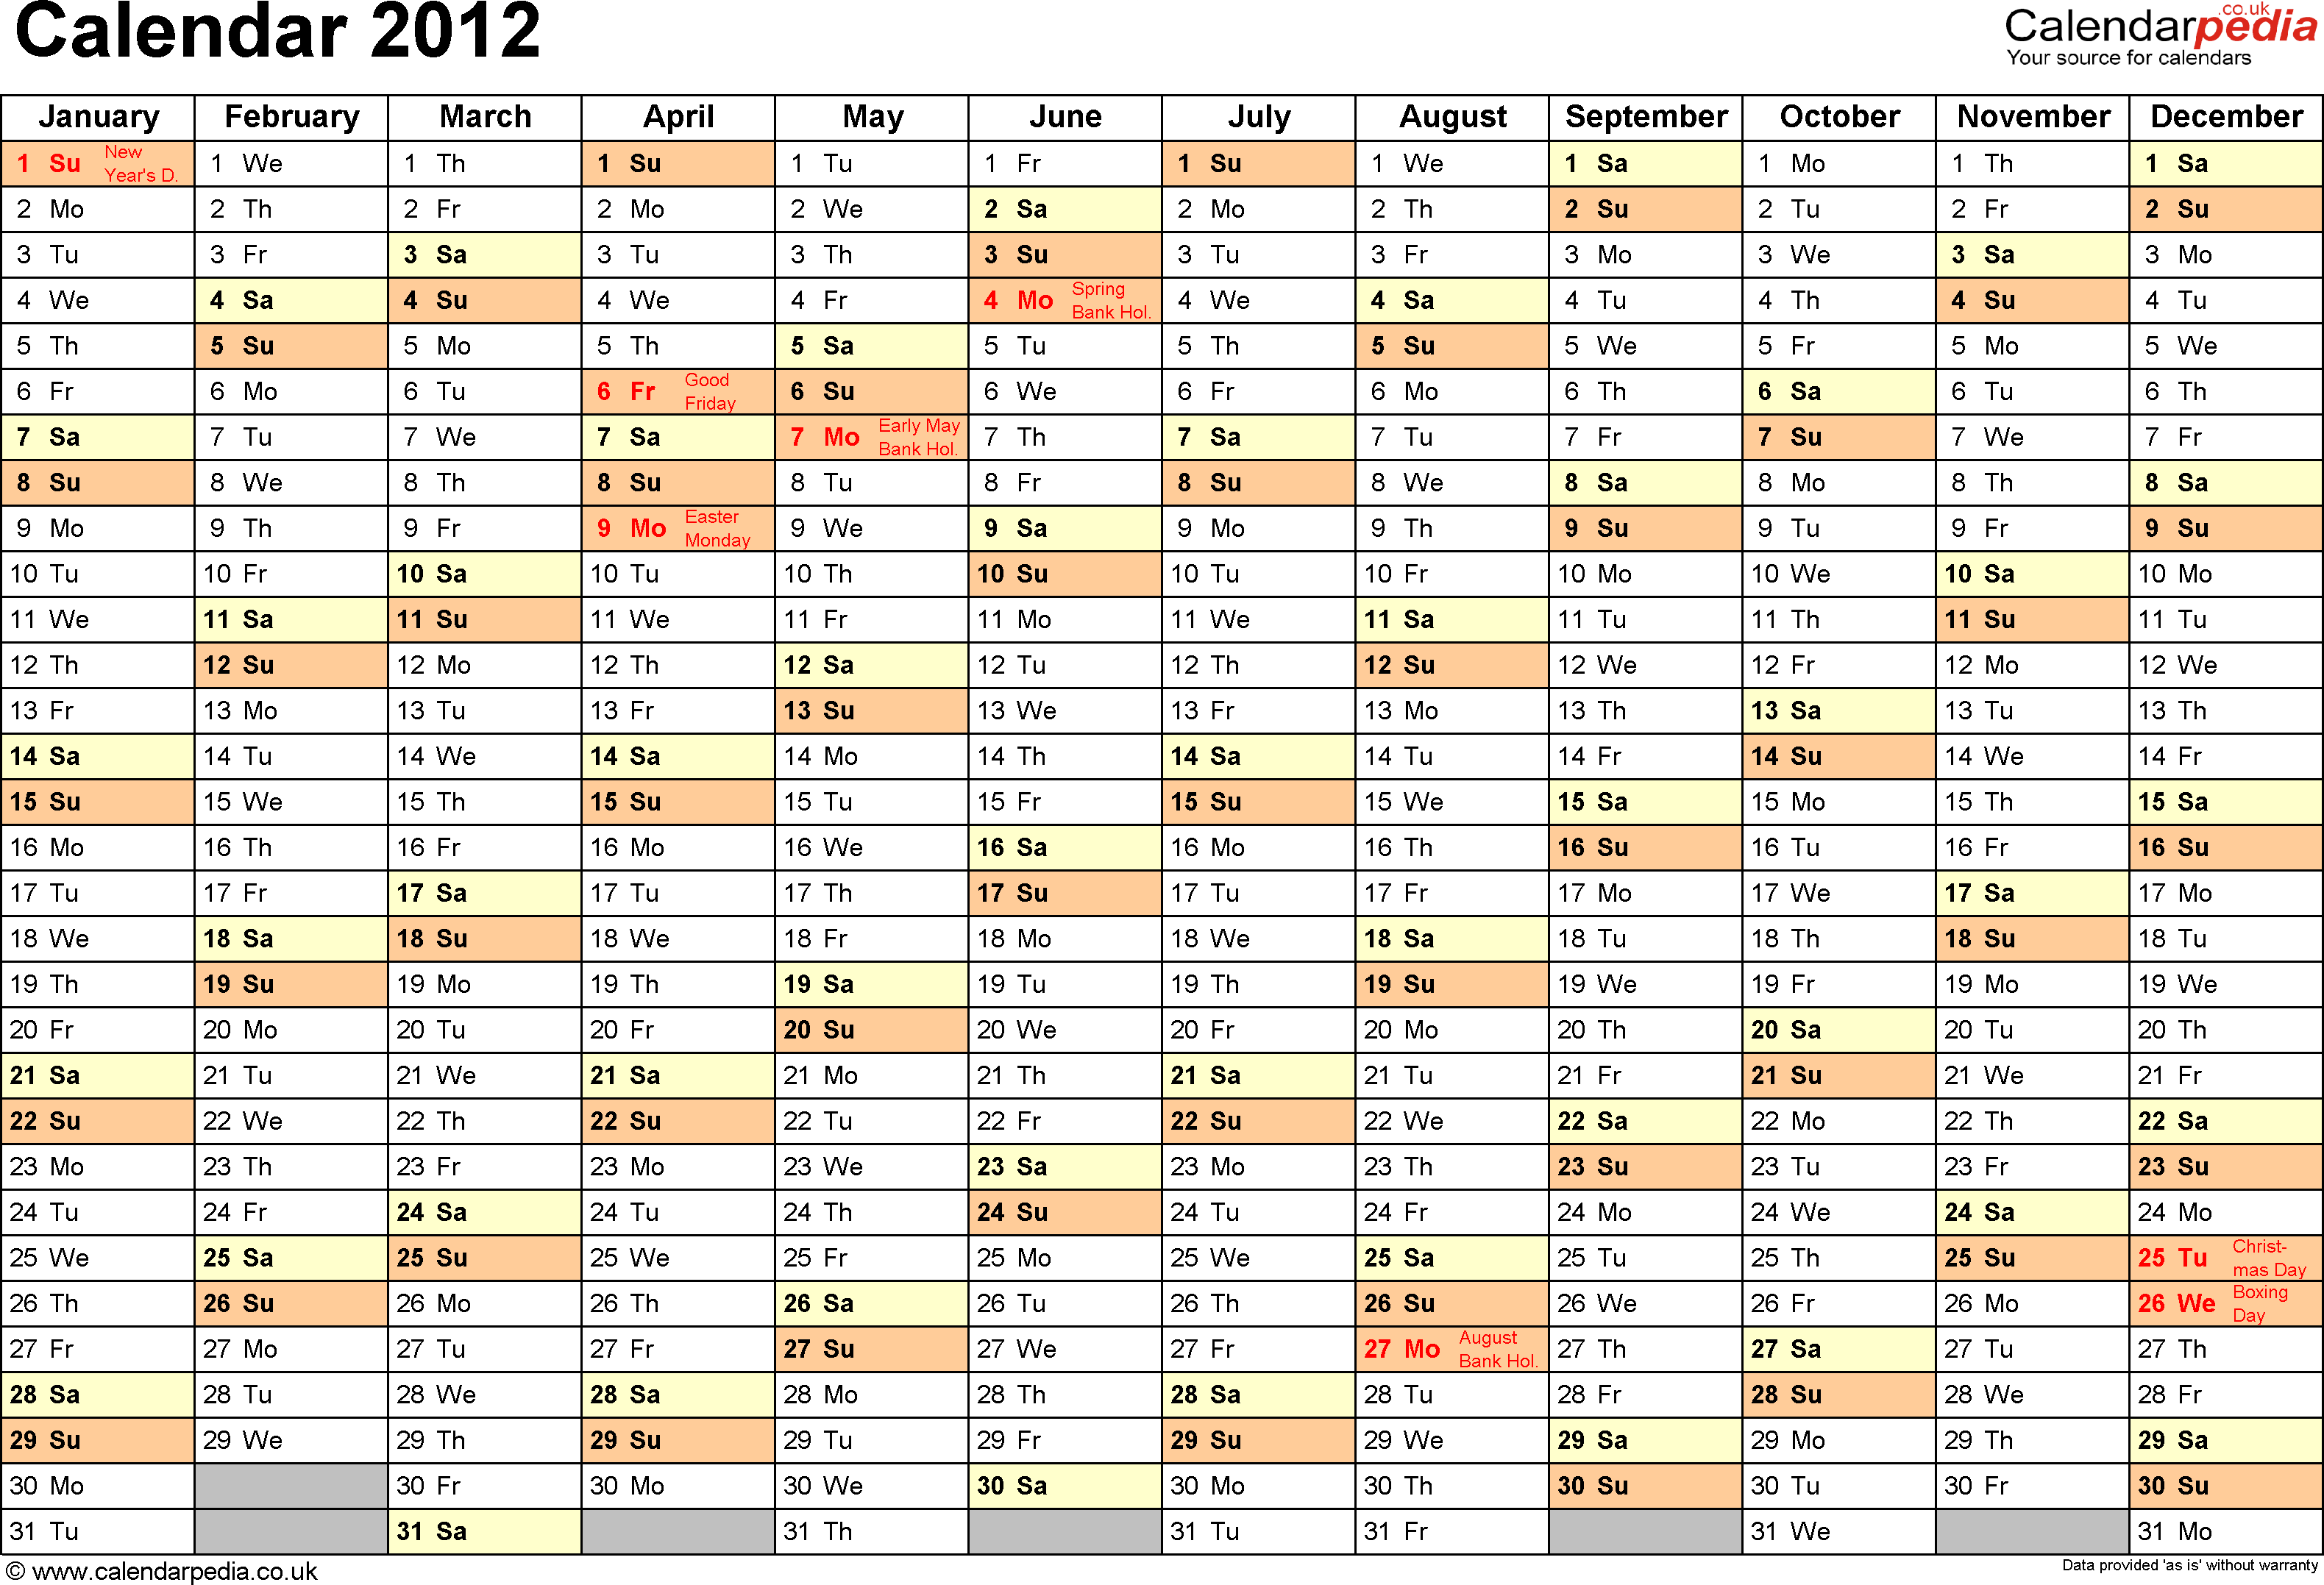 Download Template 2: Yearly calendar 2012 as PDF template, landscape orientation, A4, 1 page, months horizontally, days vertically, with UK bank holidays and week numbers